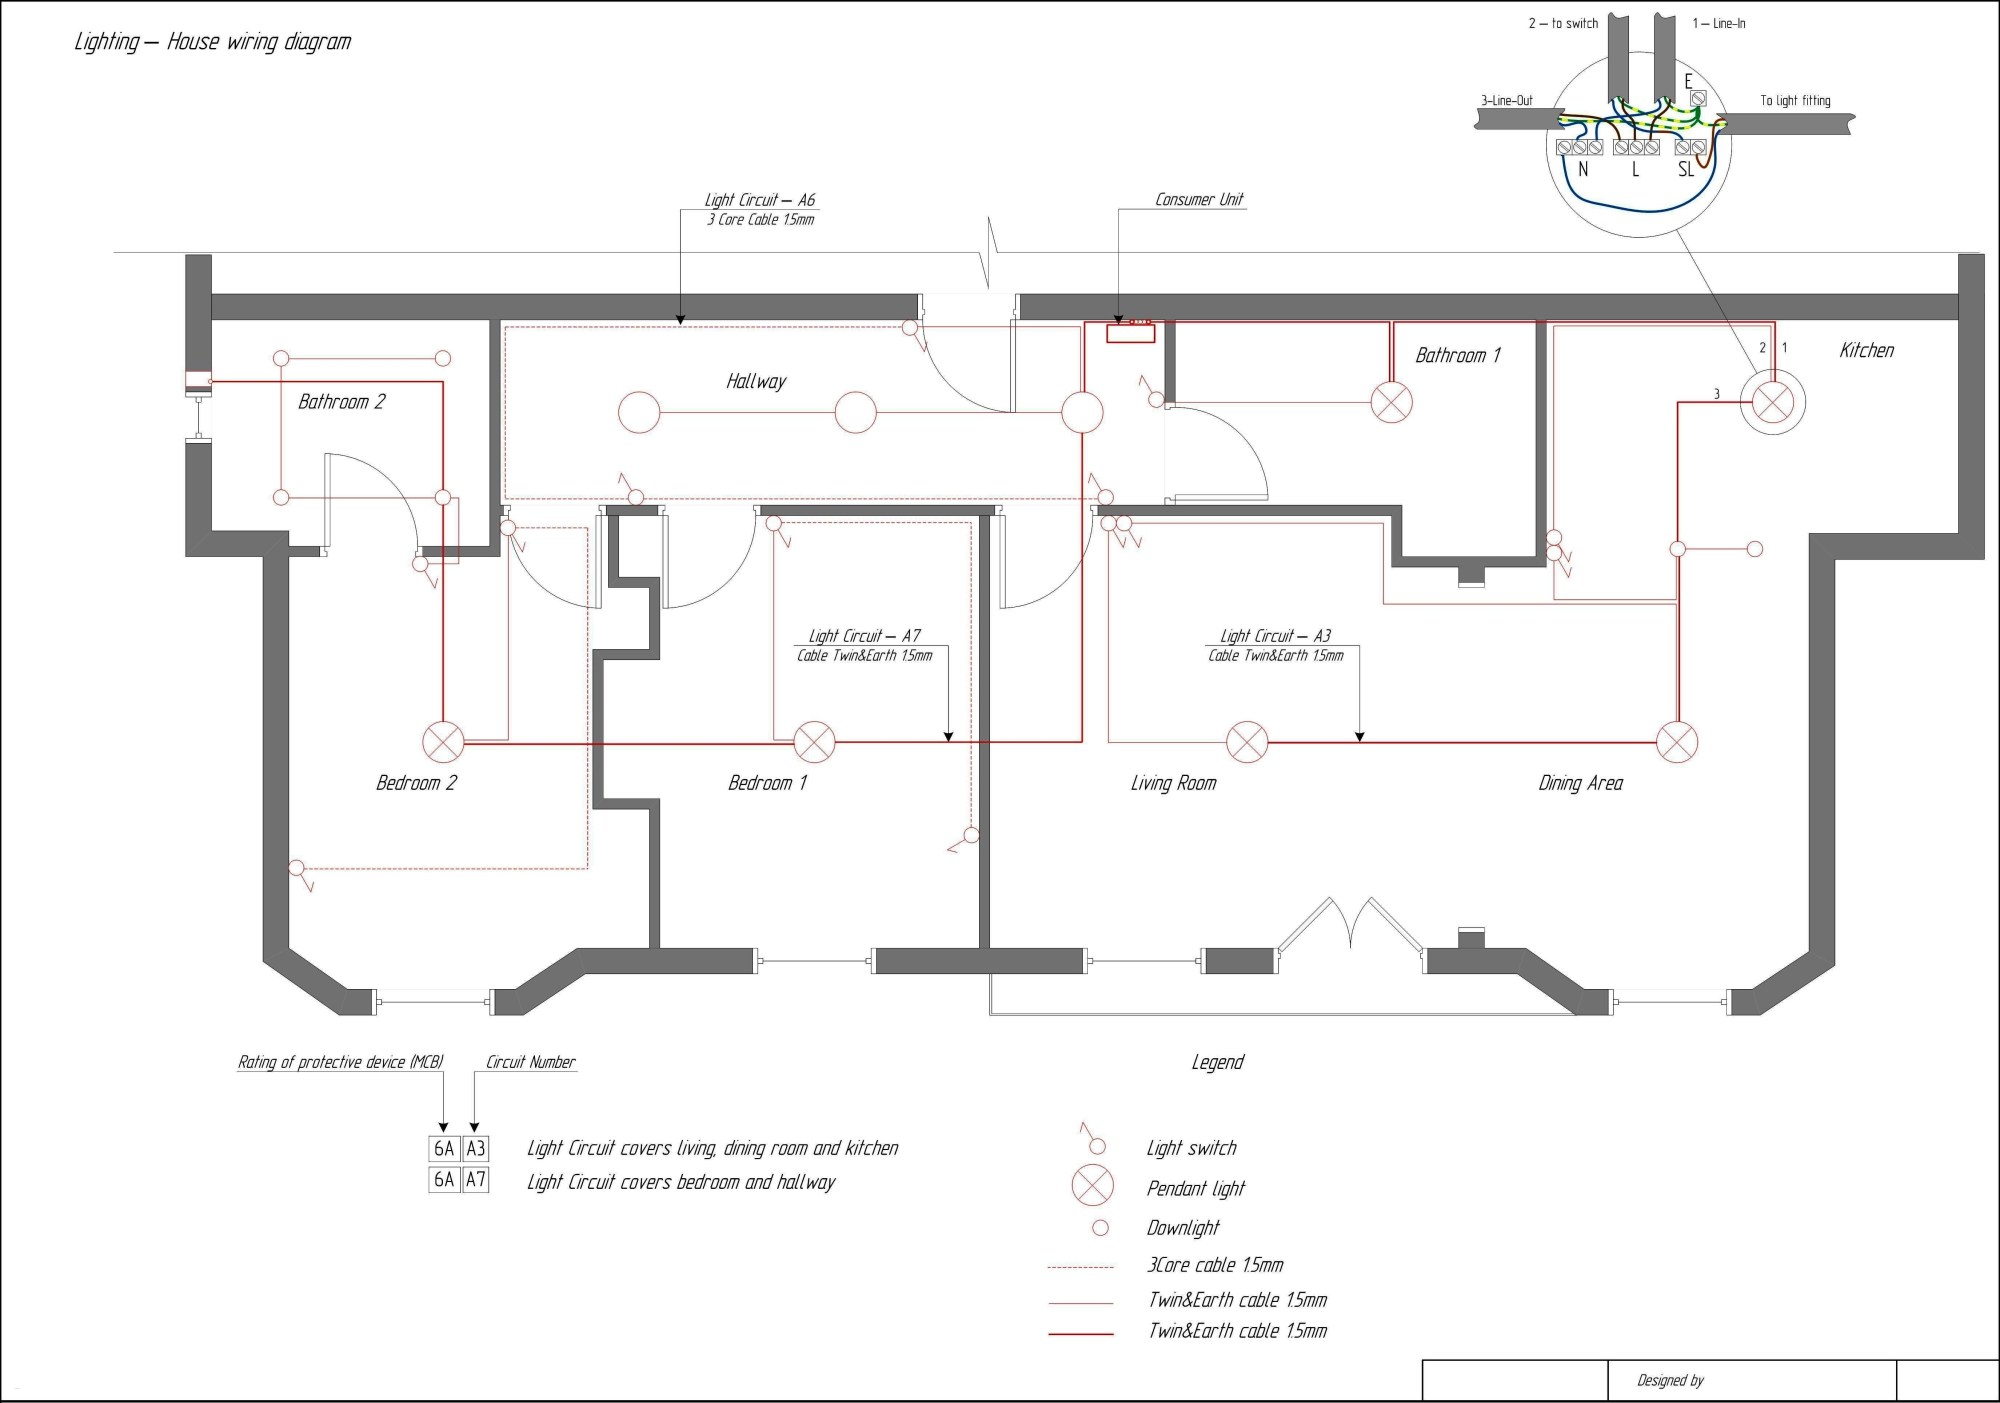 hight resolution of electrical panel wiring diagram software home electrical wiring diagram software fresh home wiring diagram line